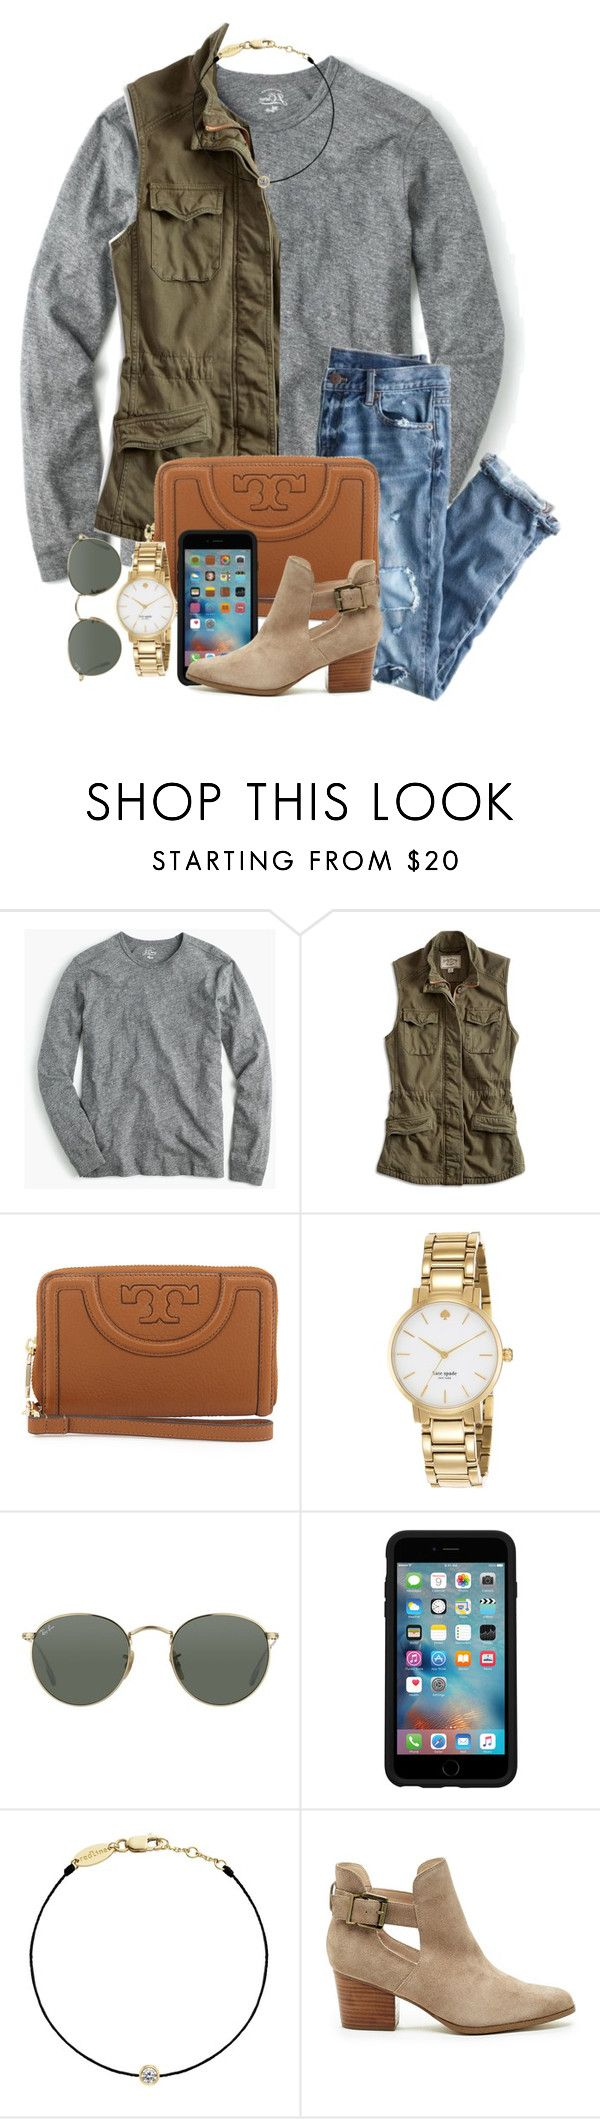 """off on Wednesday;)))"" by thefashionbyem ❤ liked on Polyvore featuring J.Crew, Lucky Brand, Tory Burch, Kate Spade, Ray-Ban, OtterBox, Redline and Sole Society"